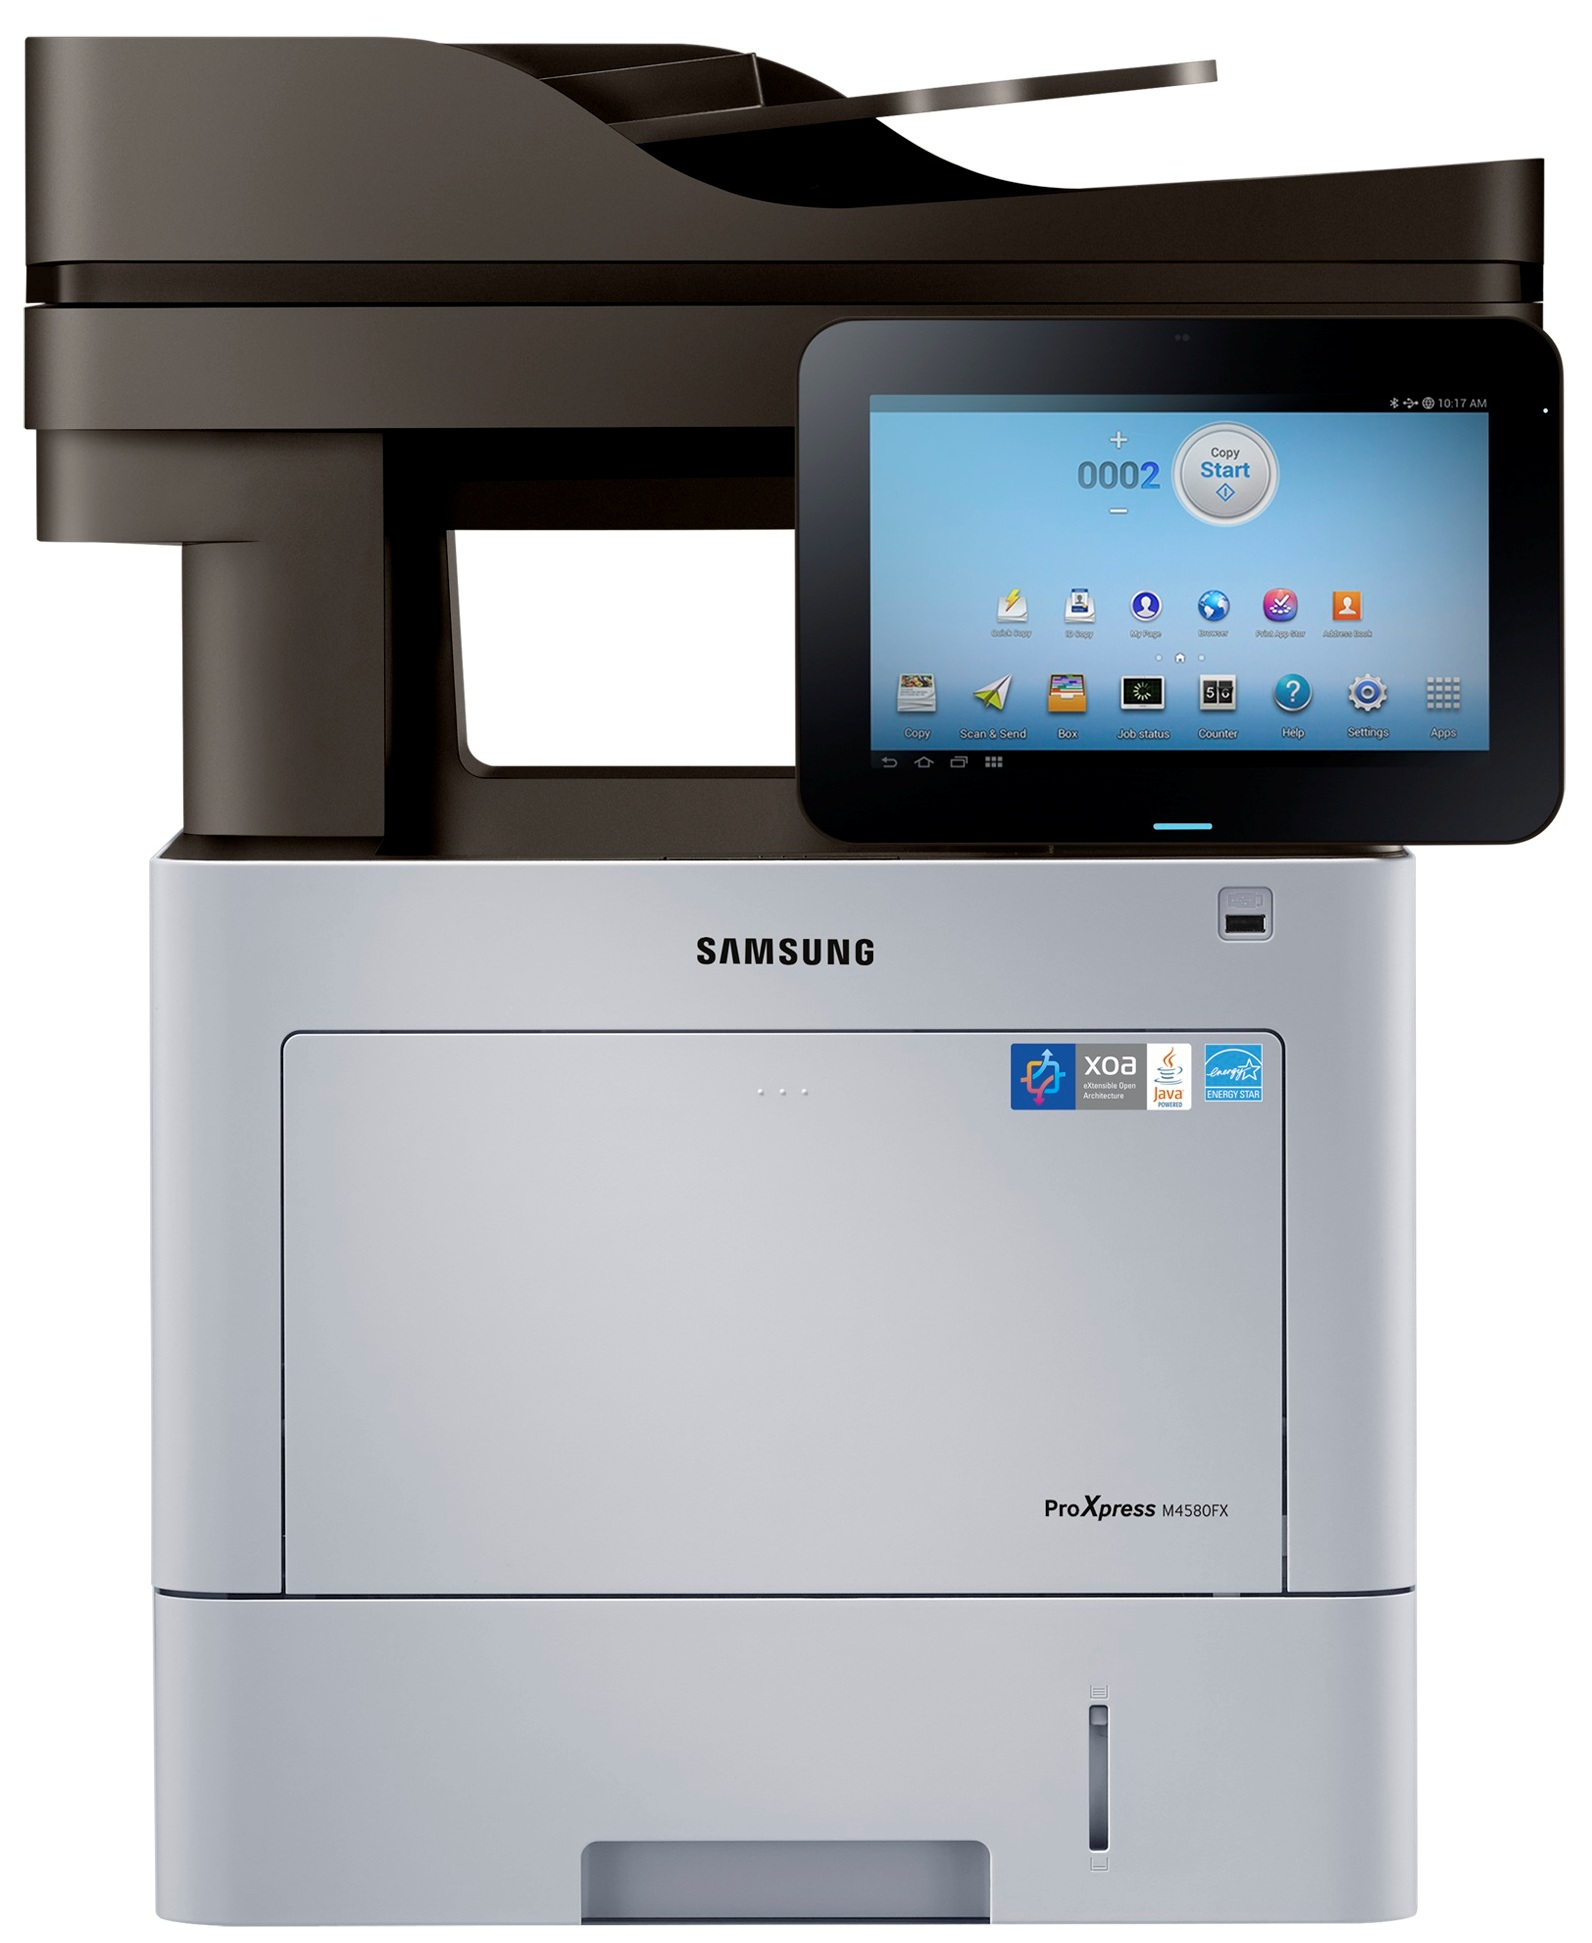 Smart ProXpress M4580 series